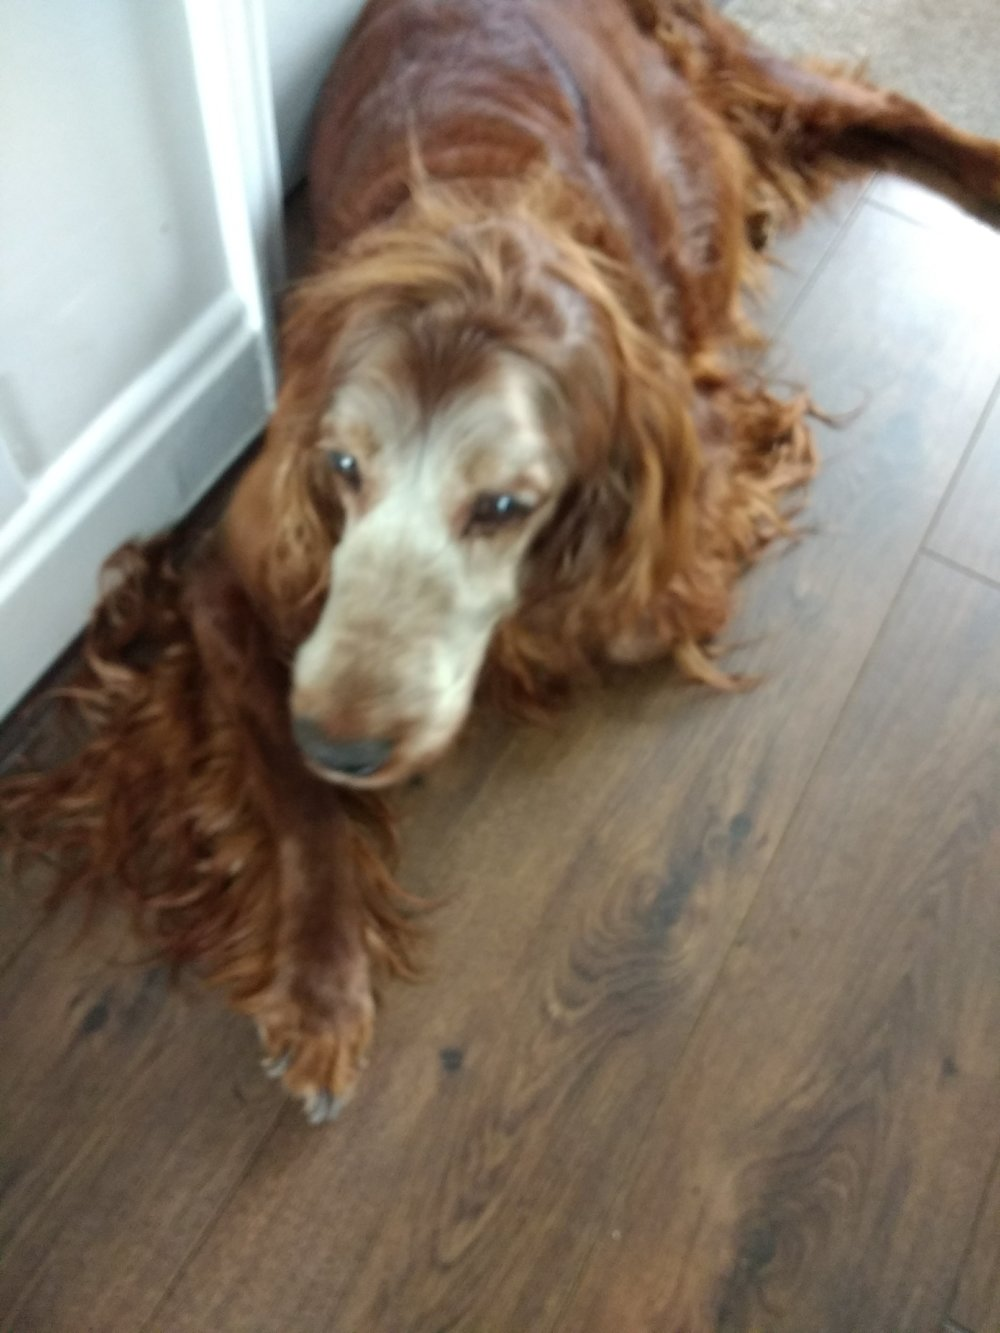 Chloe our mature Irish Setter is having laser therapy. We are all very pleased with the results to date. Paul and Lorraine have been wonderful with Chloe and very reassuring with us.  Their work is very professional and carried out in a relaxed manner They have made Chloe feel very relaxed. Chloe is a dog that gets very stressed going to a vet practice.  So top marks for Vet Nurse Direct